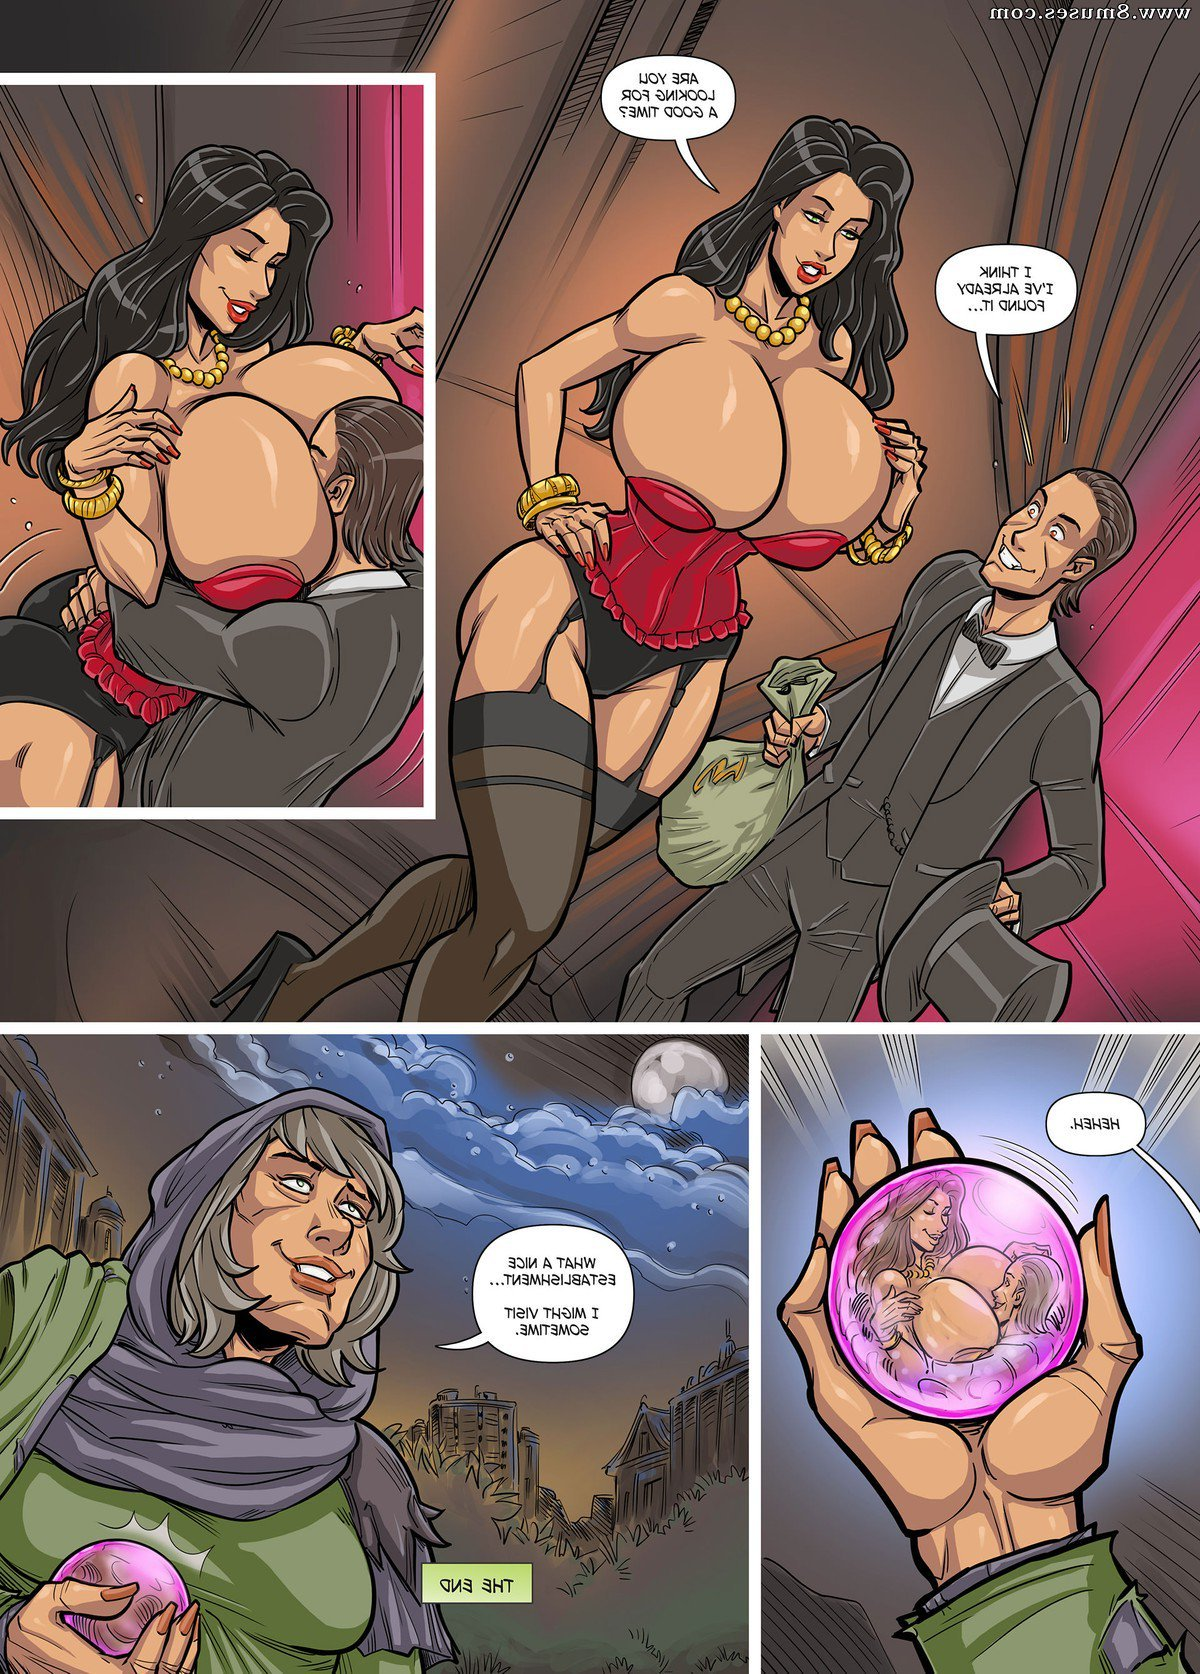 Expansionfan-Comics/The-Growing-Mistress/Issue-1 The_Growing_Mistress_-_Issue_1_17.jpg